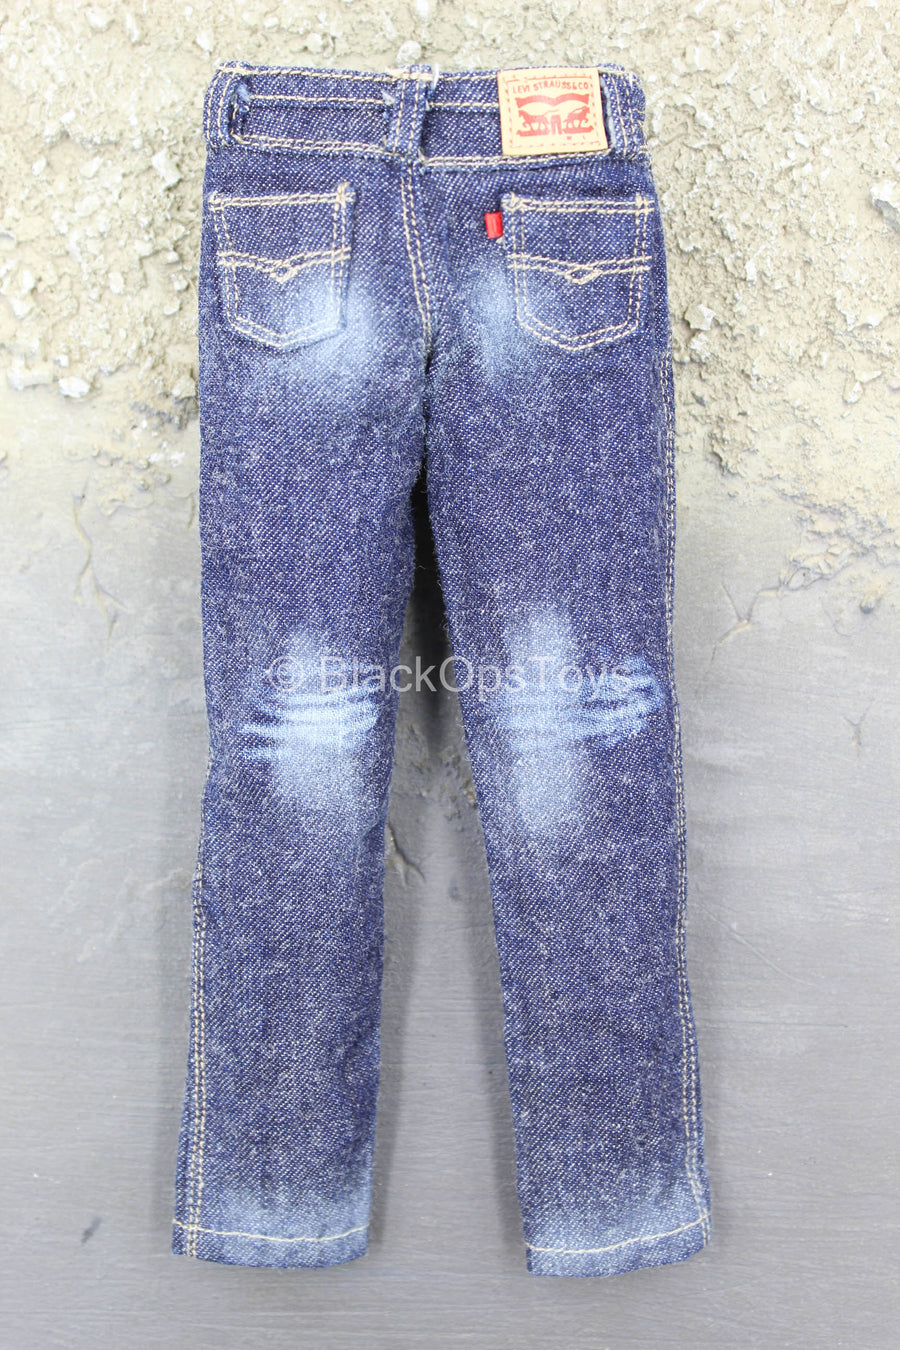 British SMU - Lone Rescuer - Faded Denim Blue Jeans